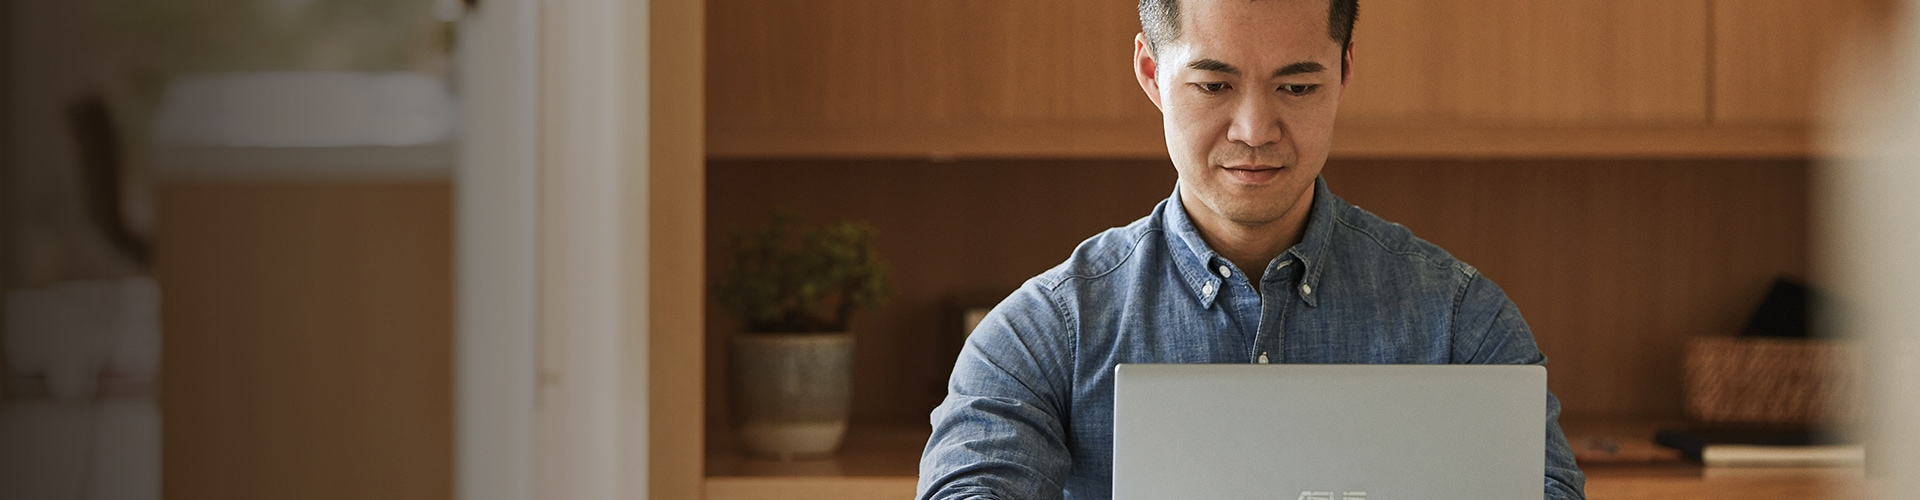 Person wearing a denim shirt sits alone looking at a laptop.